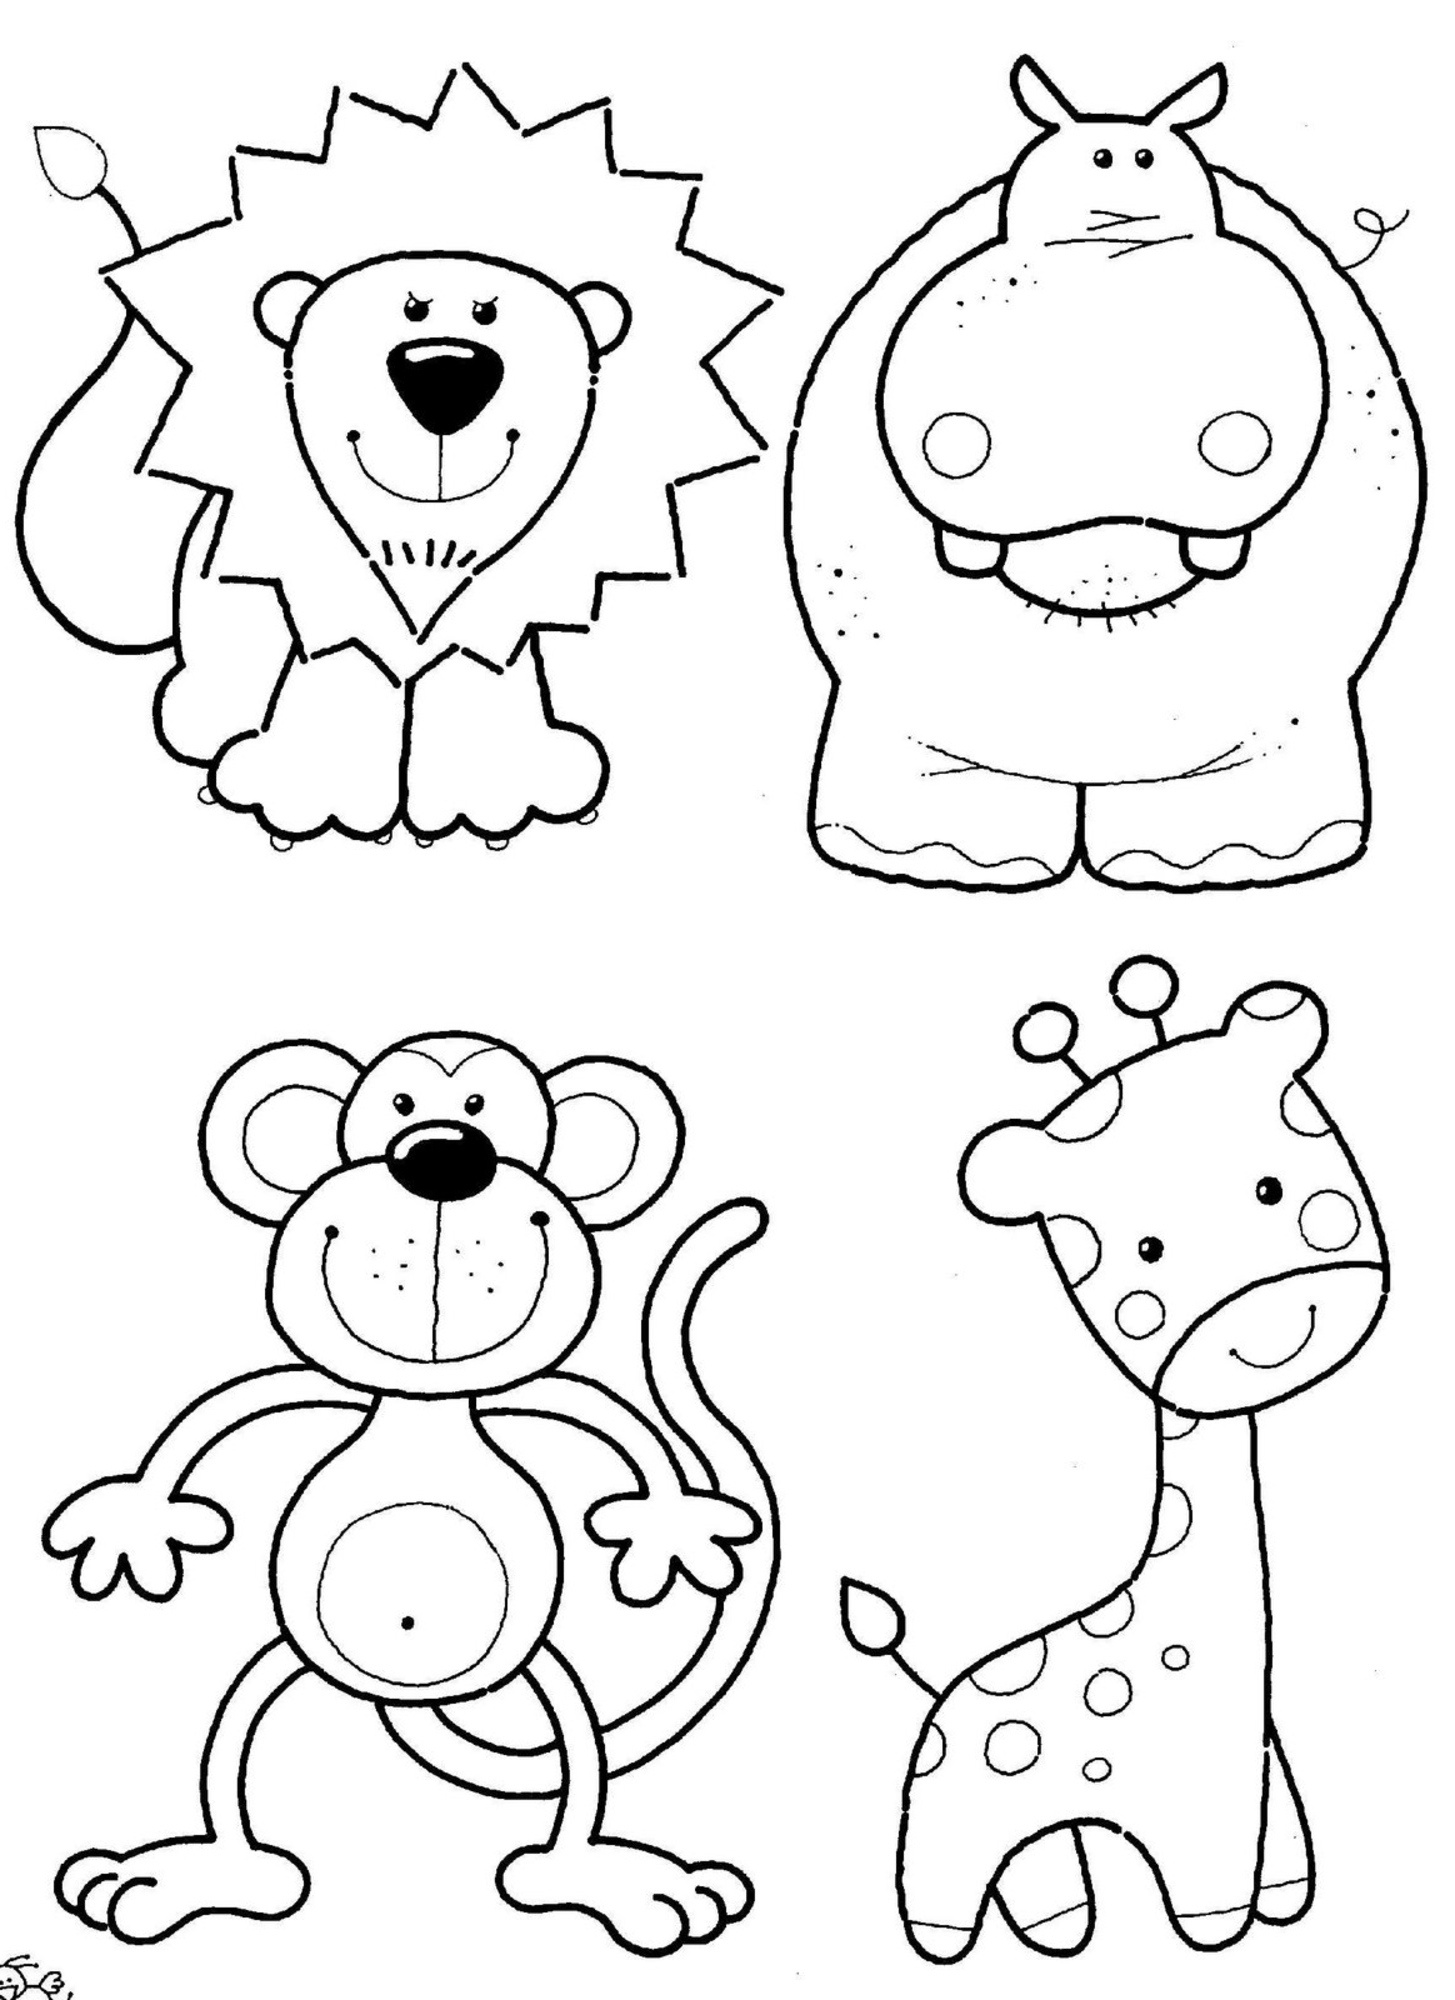 cute zoo coloring pages cute zoo animal coloring pages coloring home cute coloring pages zoo